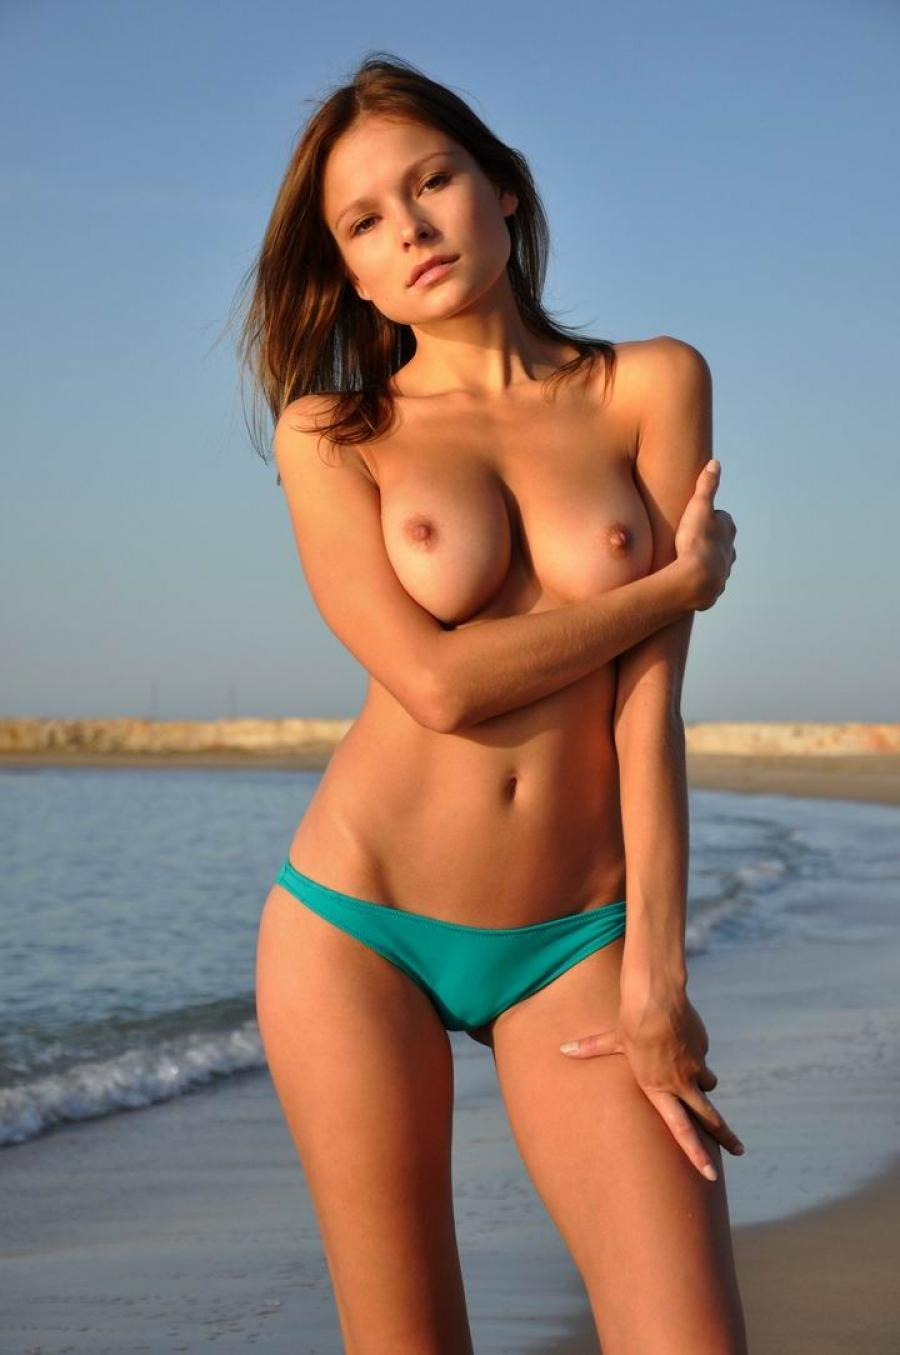 Amateur topless babe at the beach